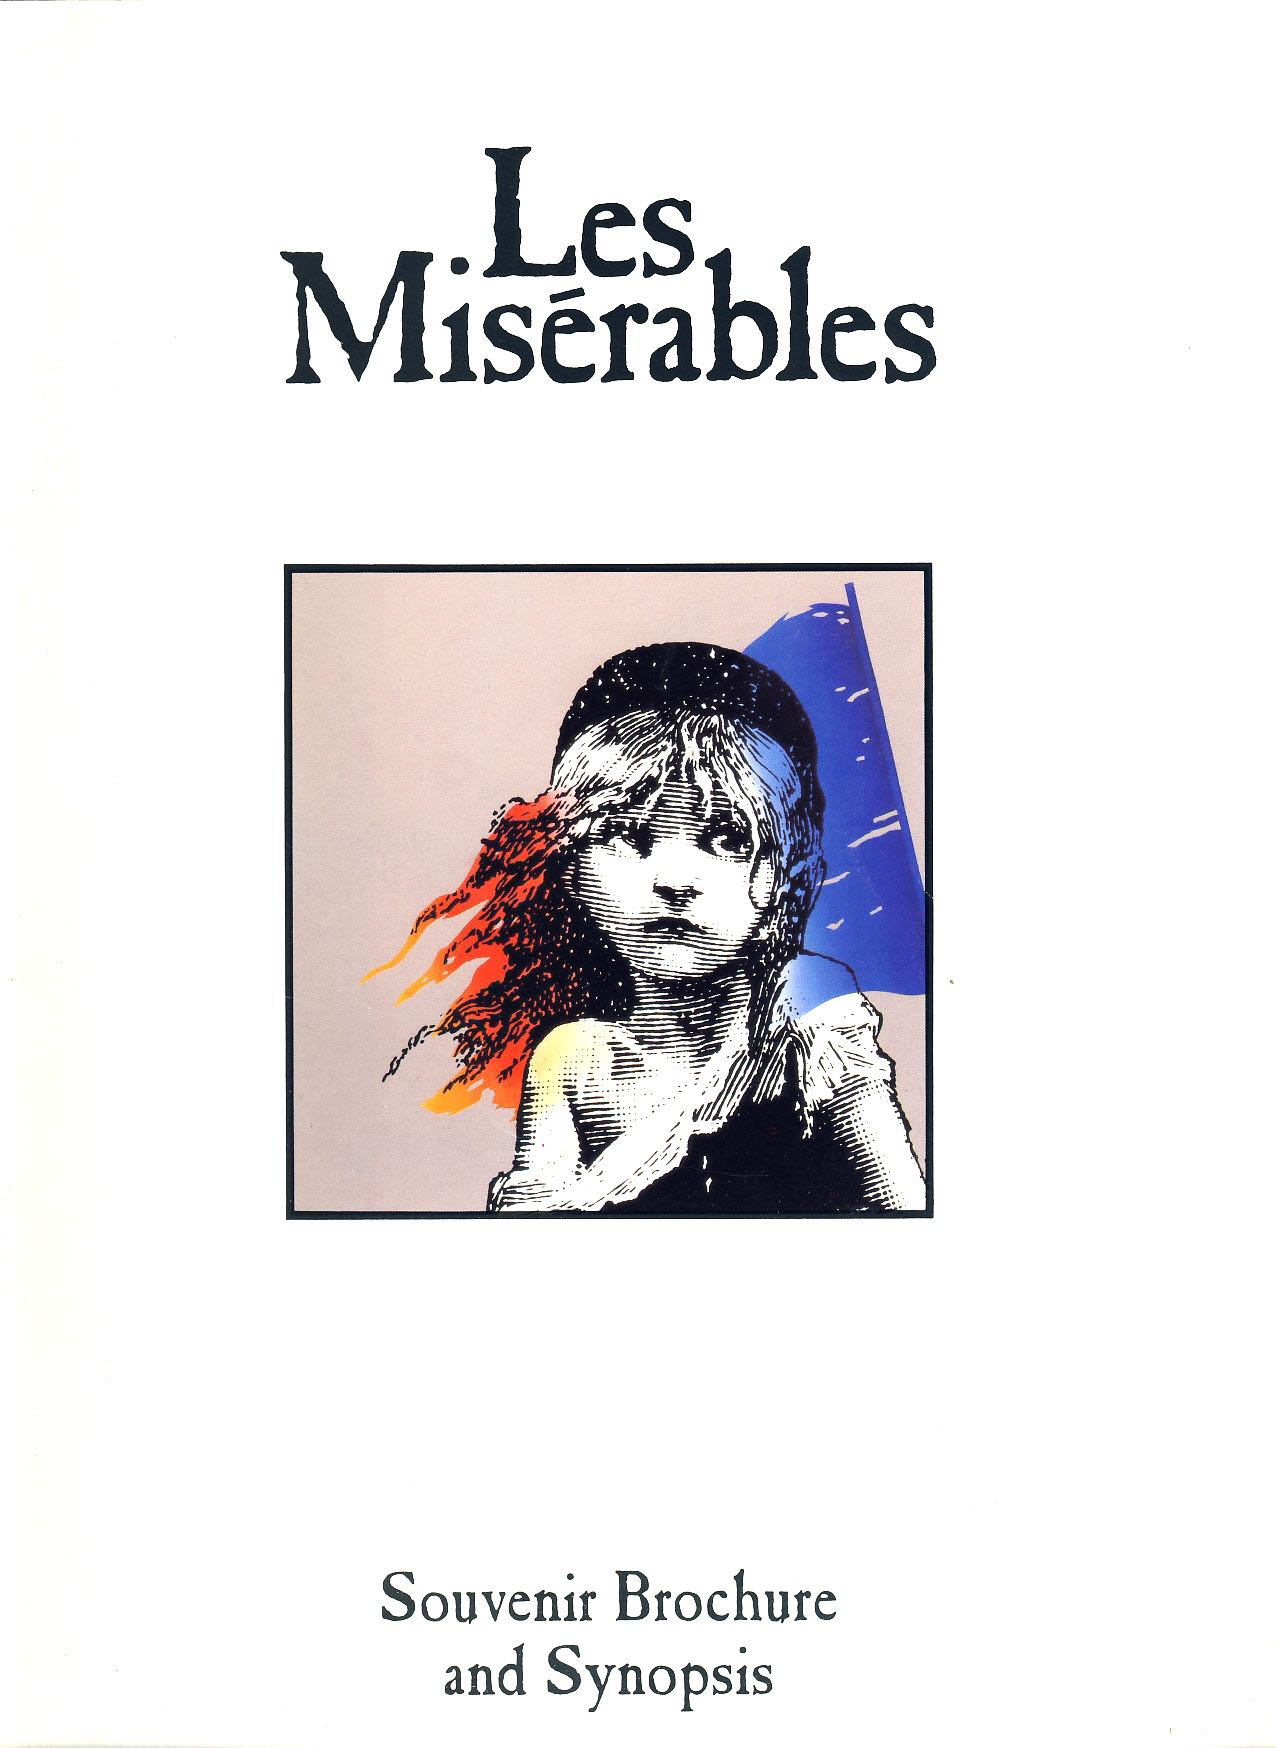 1992 Les Miserables Souvrenir Brochure and Synopsis 16 pages refb101213 Pre-owned Programme in Good Condition. Measures approx 22cm x 30cm